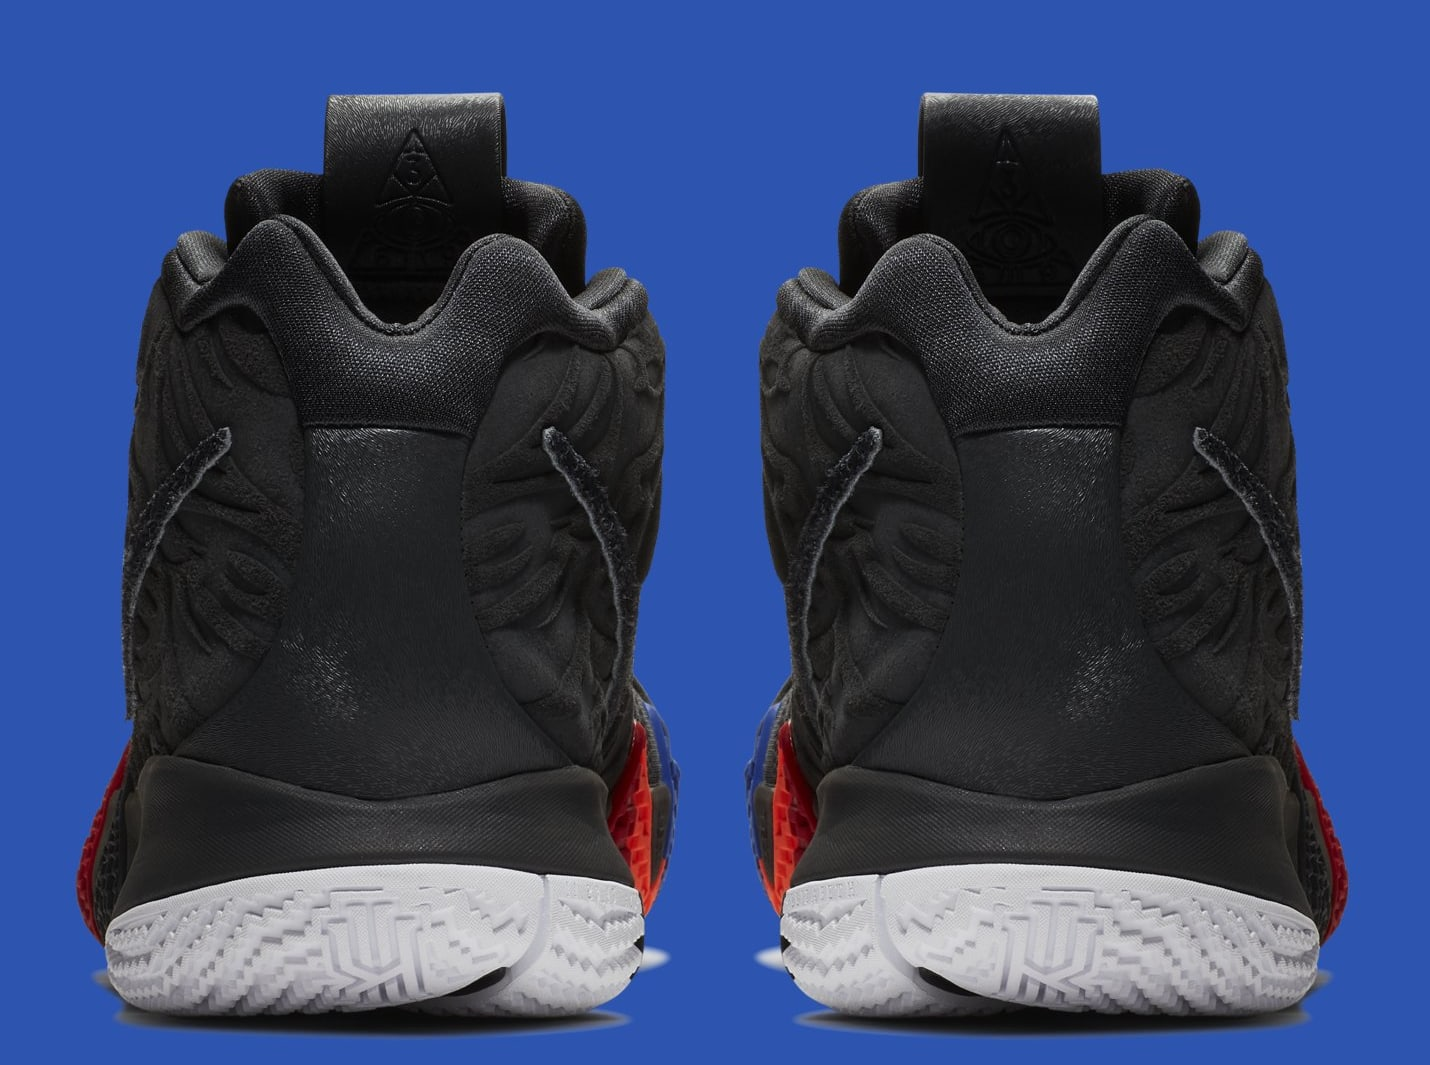 new concept ae60b 5a8db Nike Kyrie 4 'Year of the Monkey' 943807-011 Release Date | Sole Collector